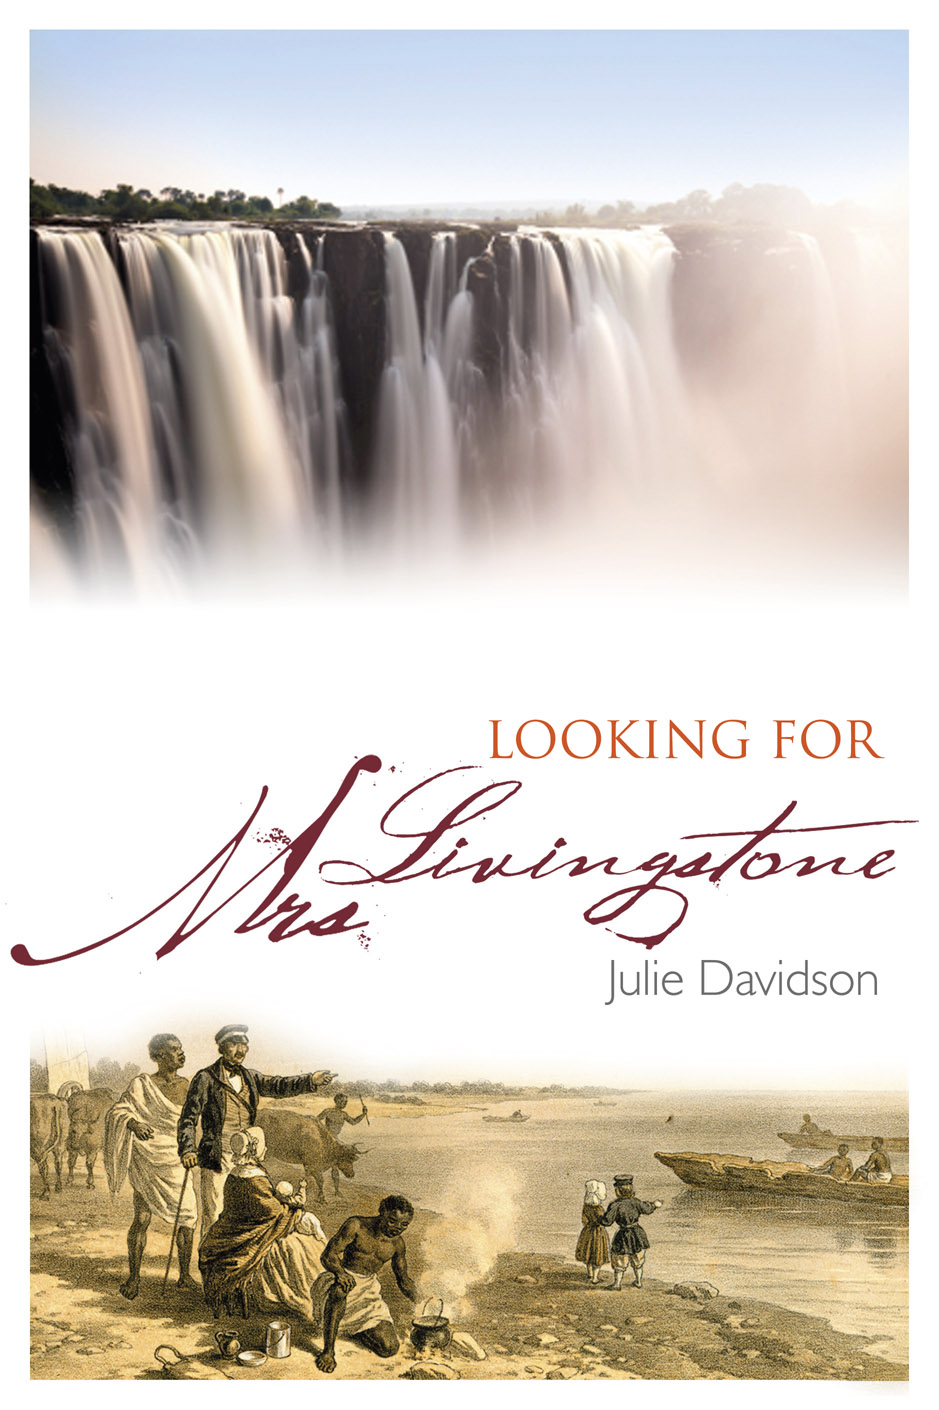 Looking for Mrs. Livingstone